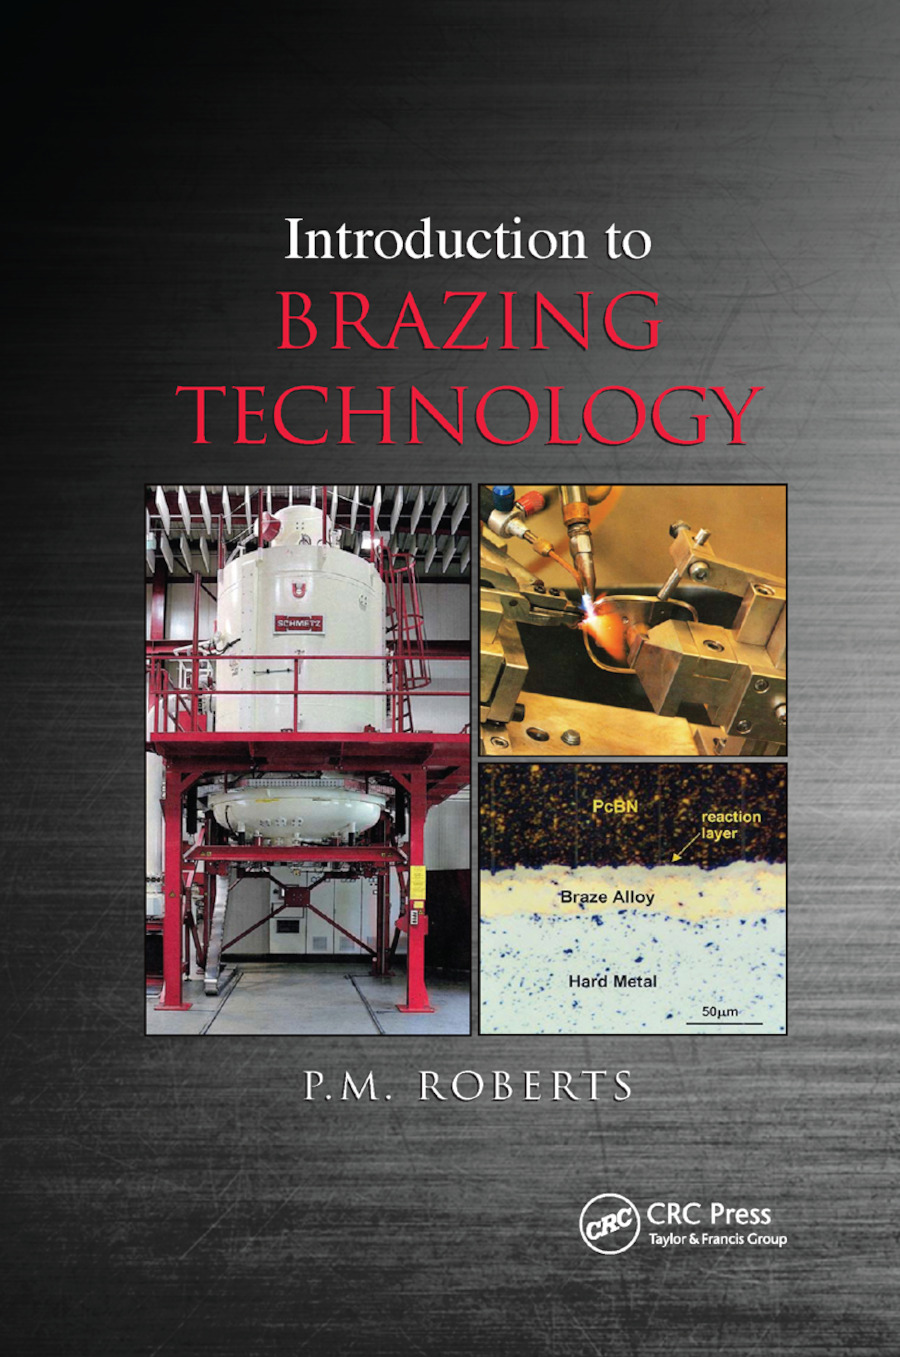 Introduction to Brazing Technology book cover